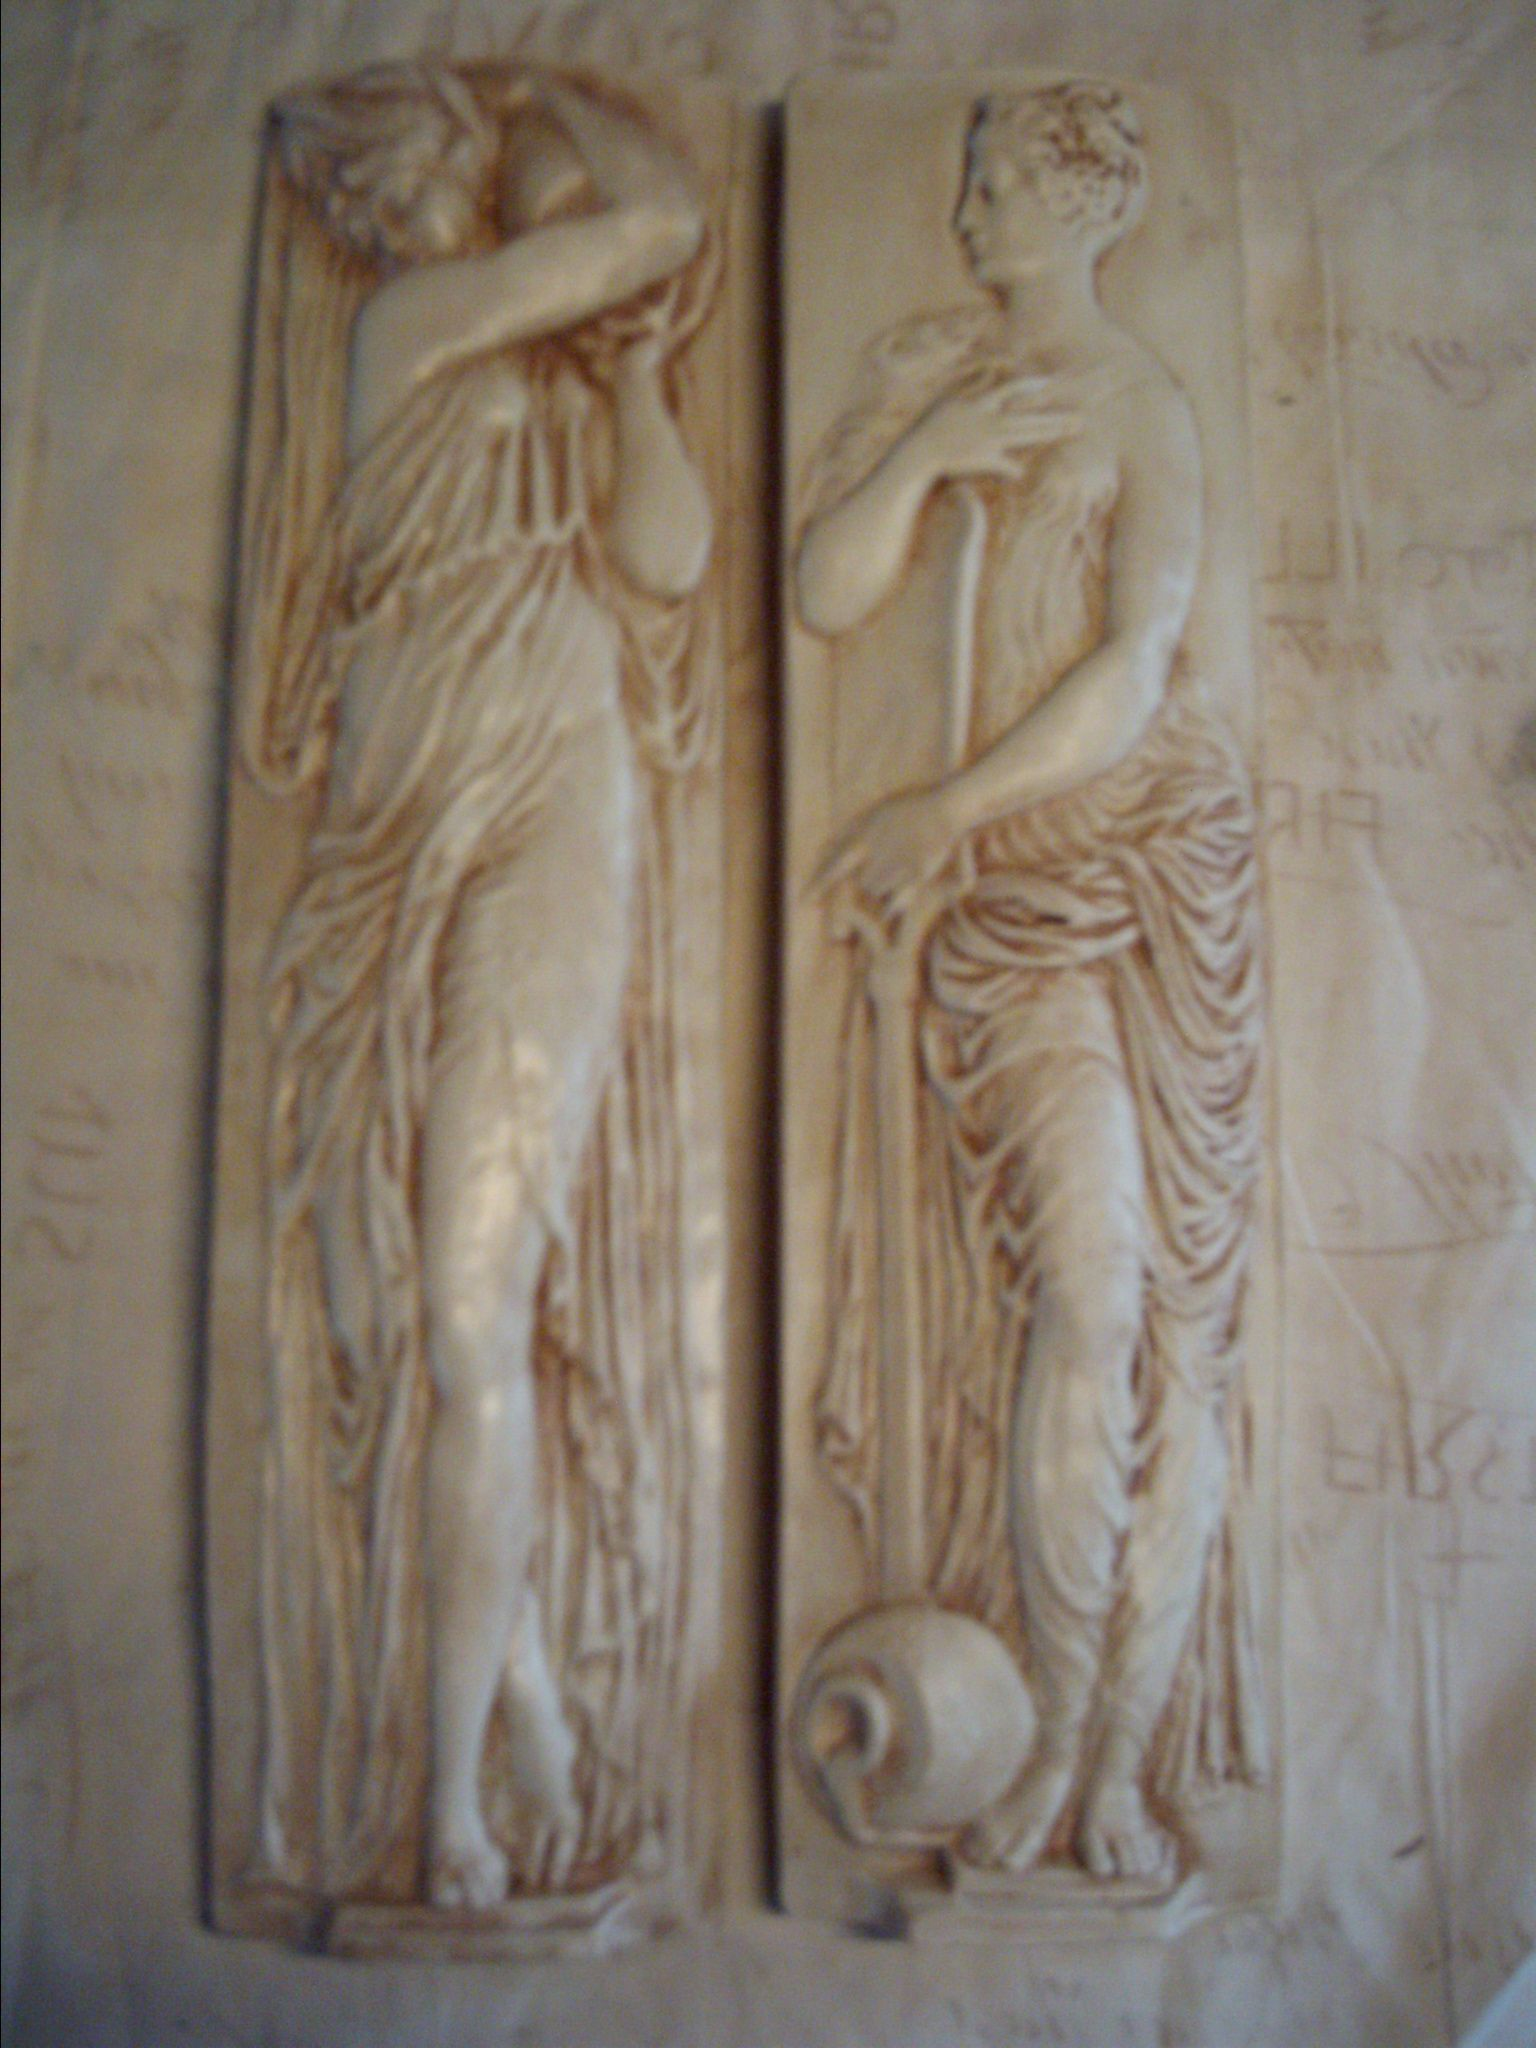 2 Greek Water Bearer Decorative Wall Plaques | Wowthankyou.co.uk £15